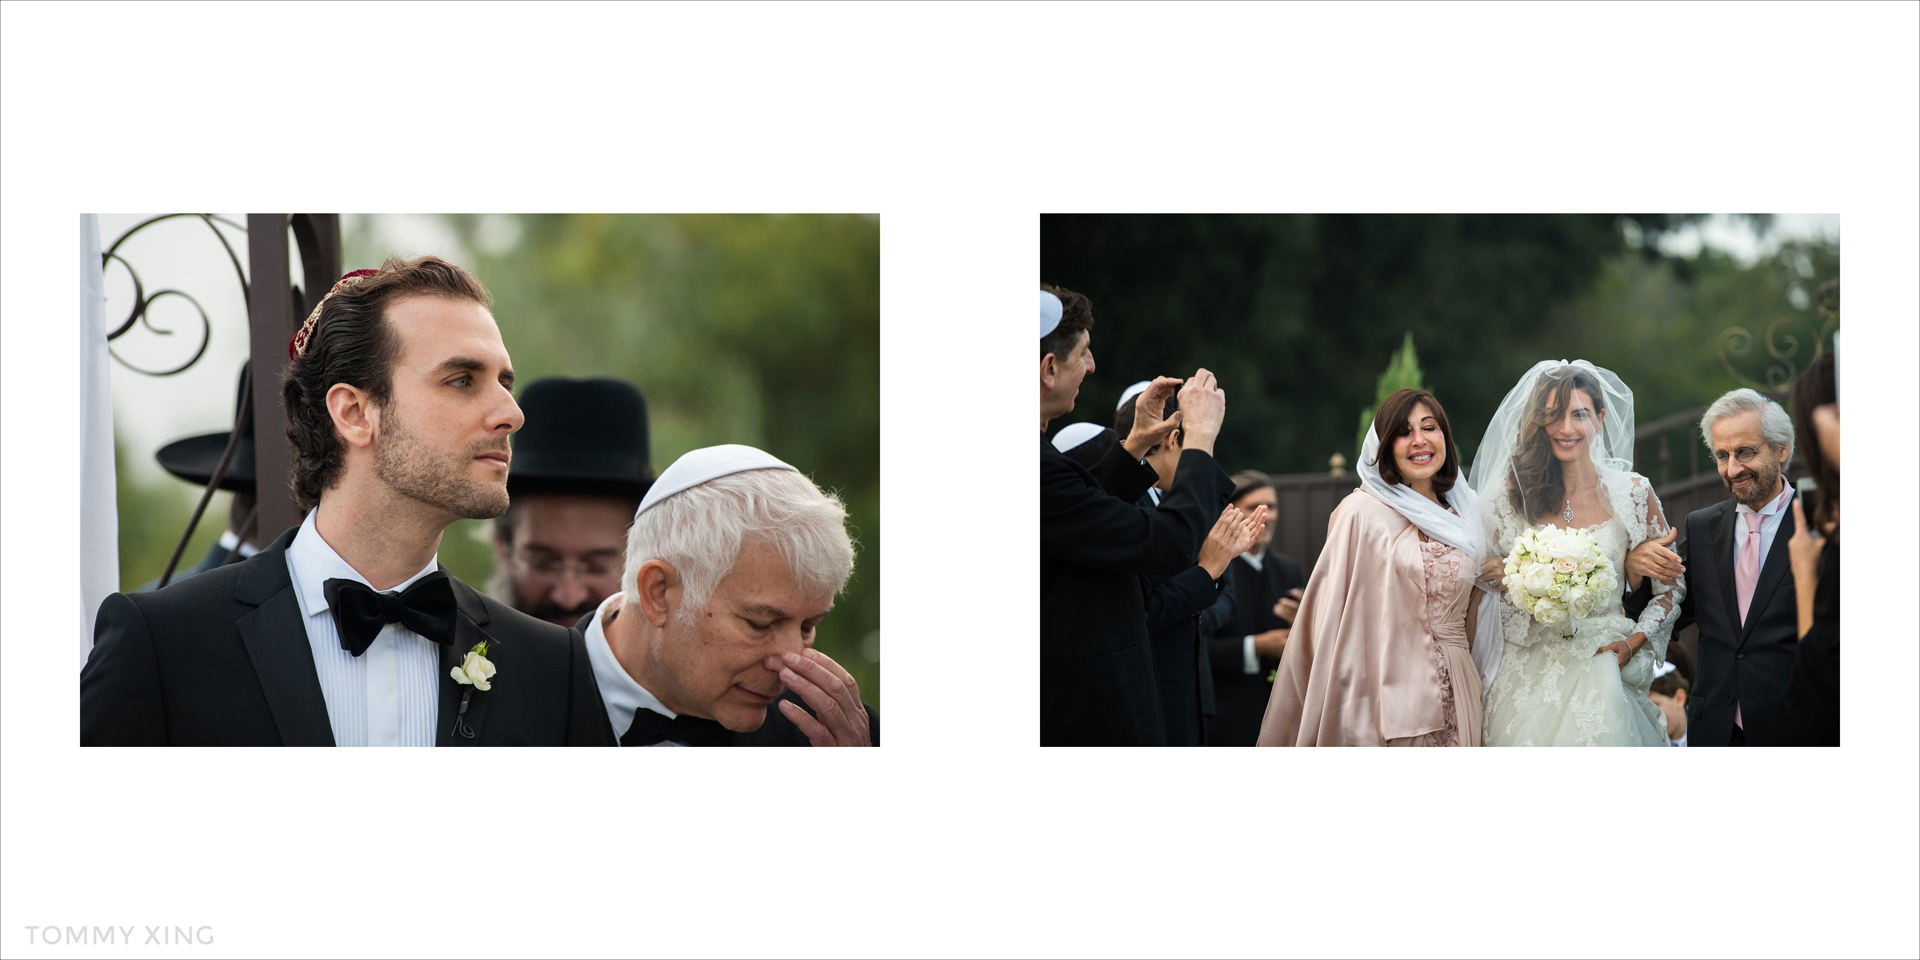 Los Angeles Jewishg Wedding at Riviera Country Club in Pacific Palisades 洛杉矶婚礼婚纱摄影师  Tommy Xing Photography 23.jpg